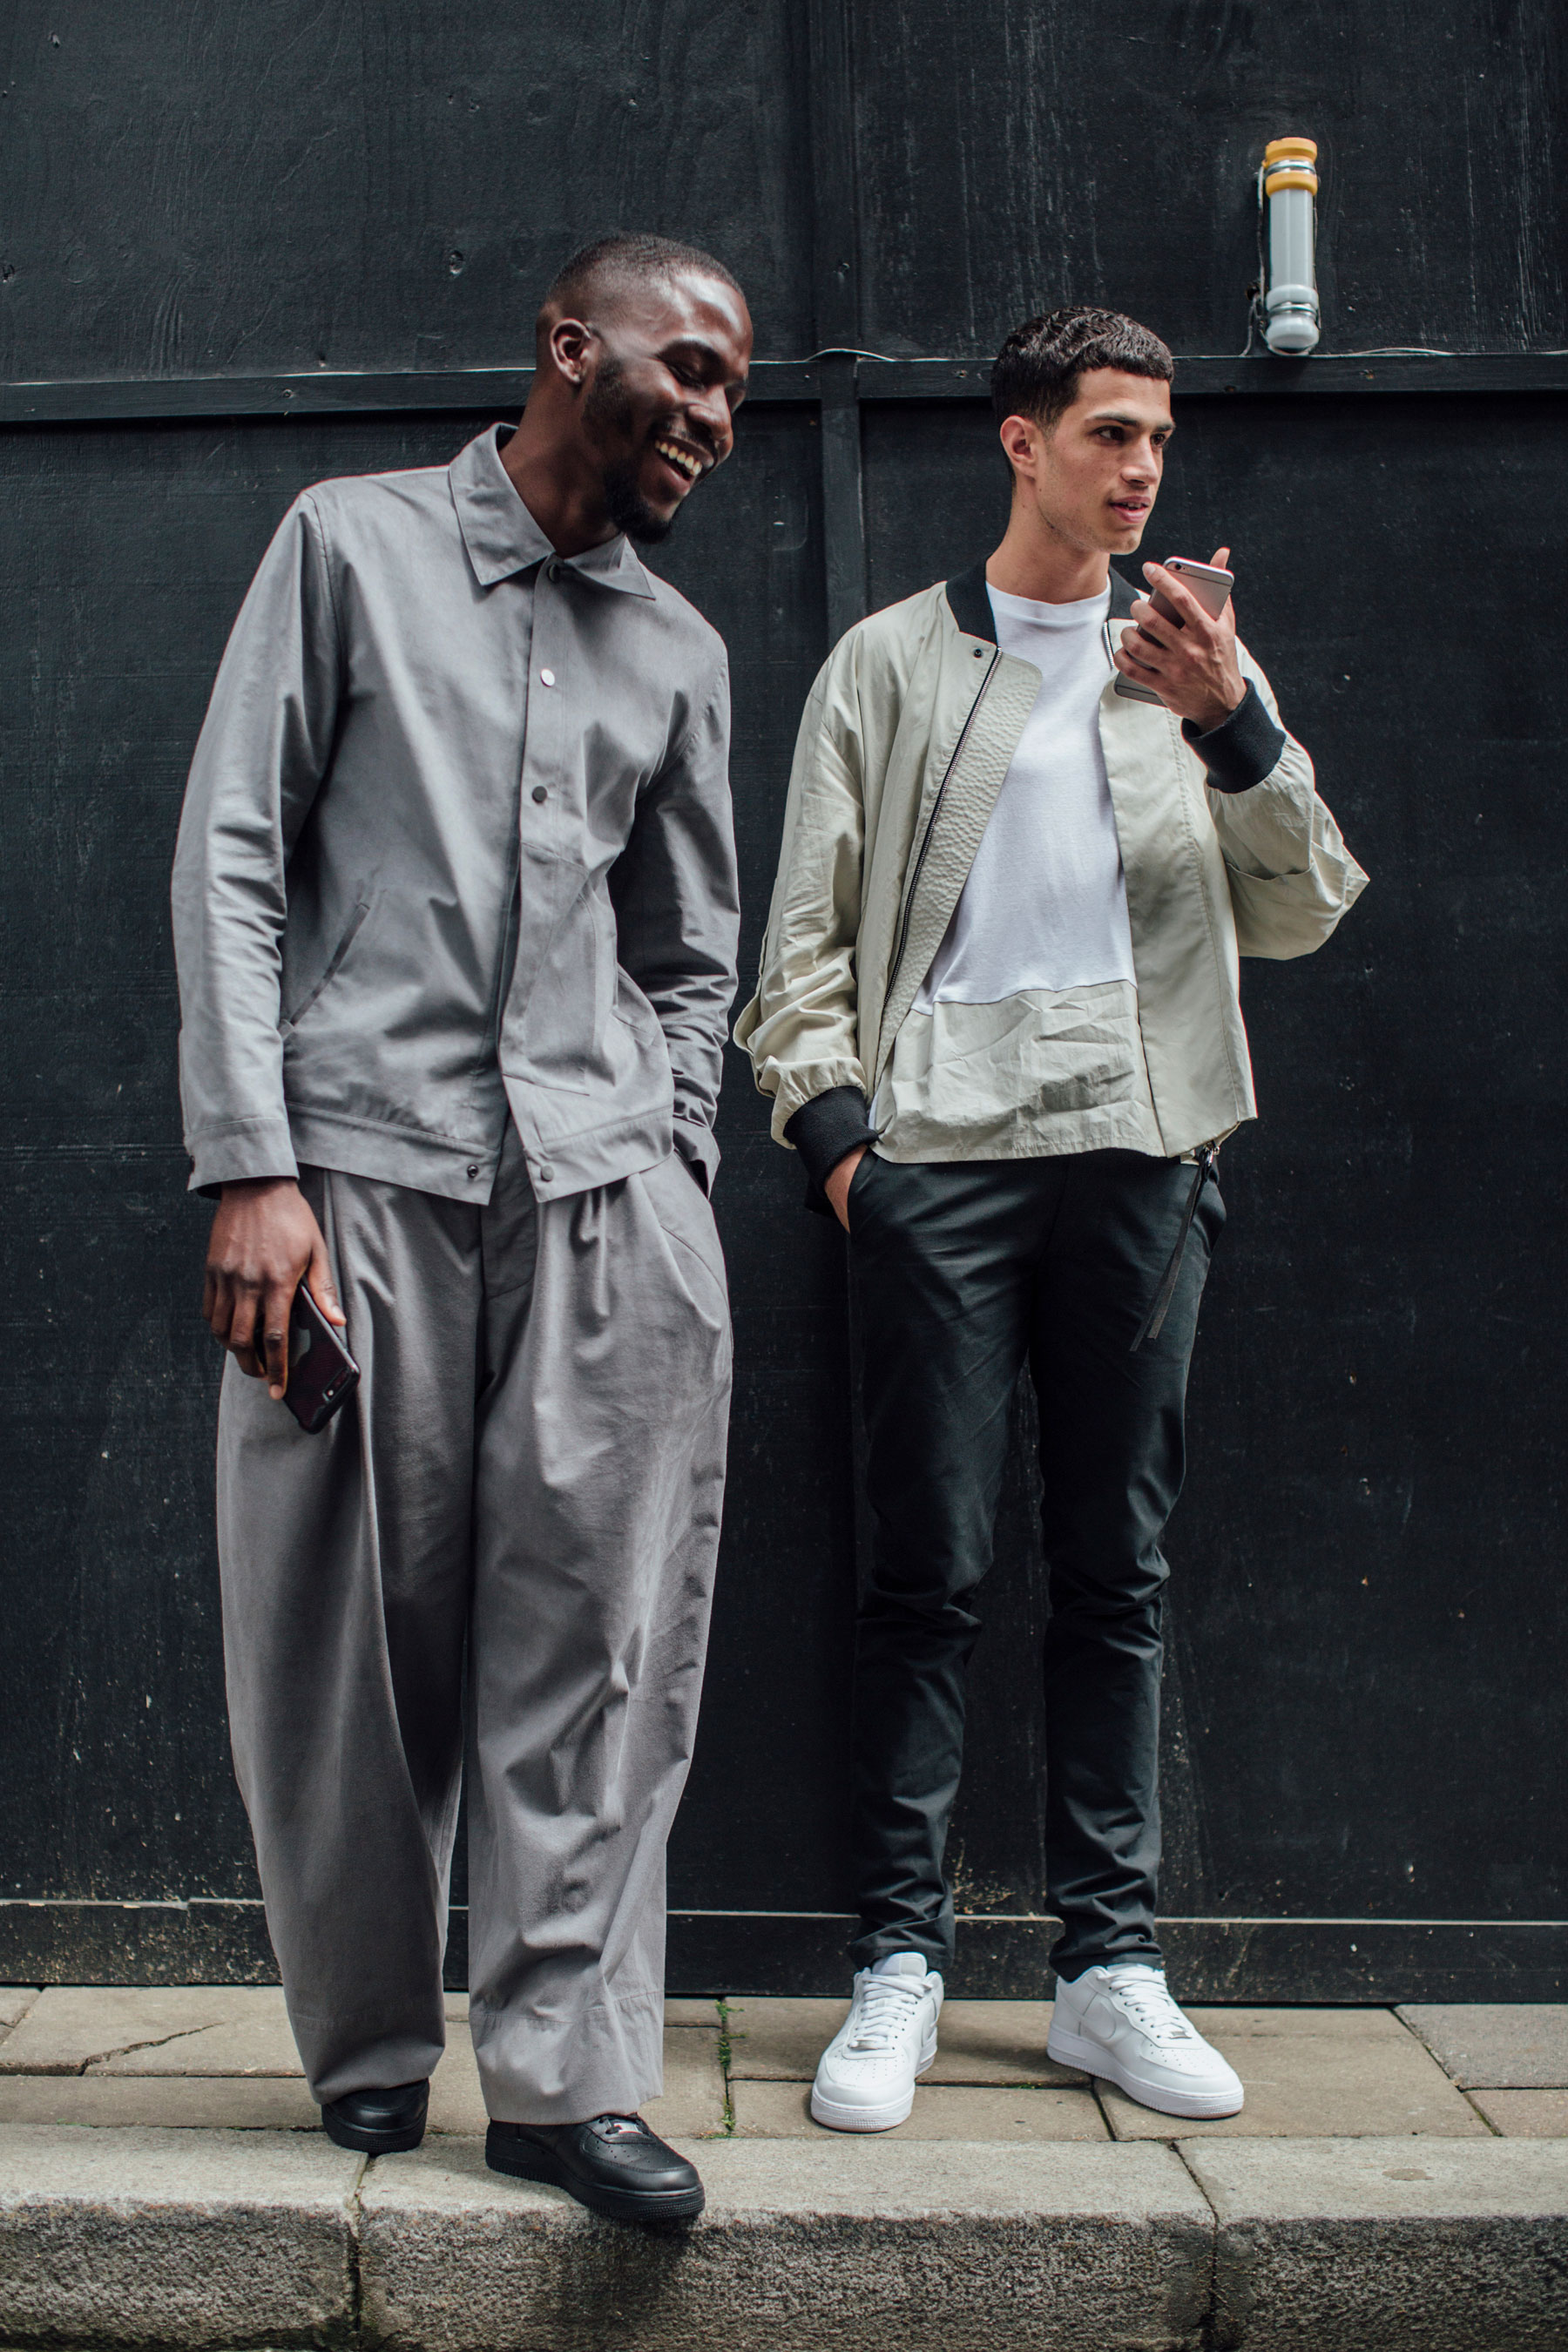 7a3a0fa7d443 London Fashion Week Men s Street Style Day 1 Spring 2018